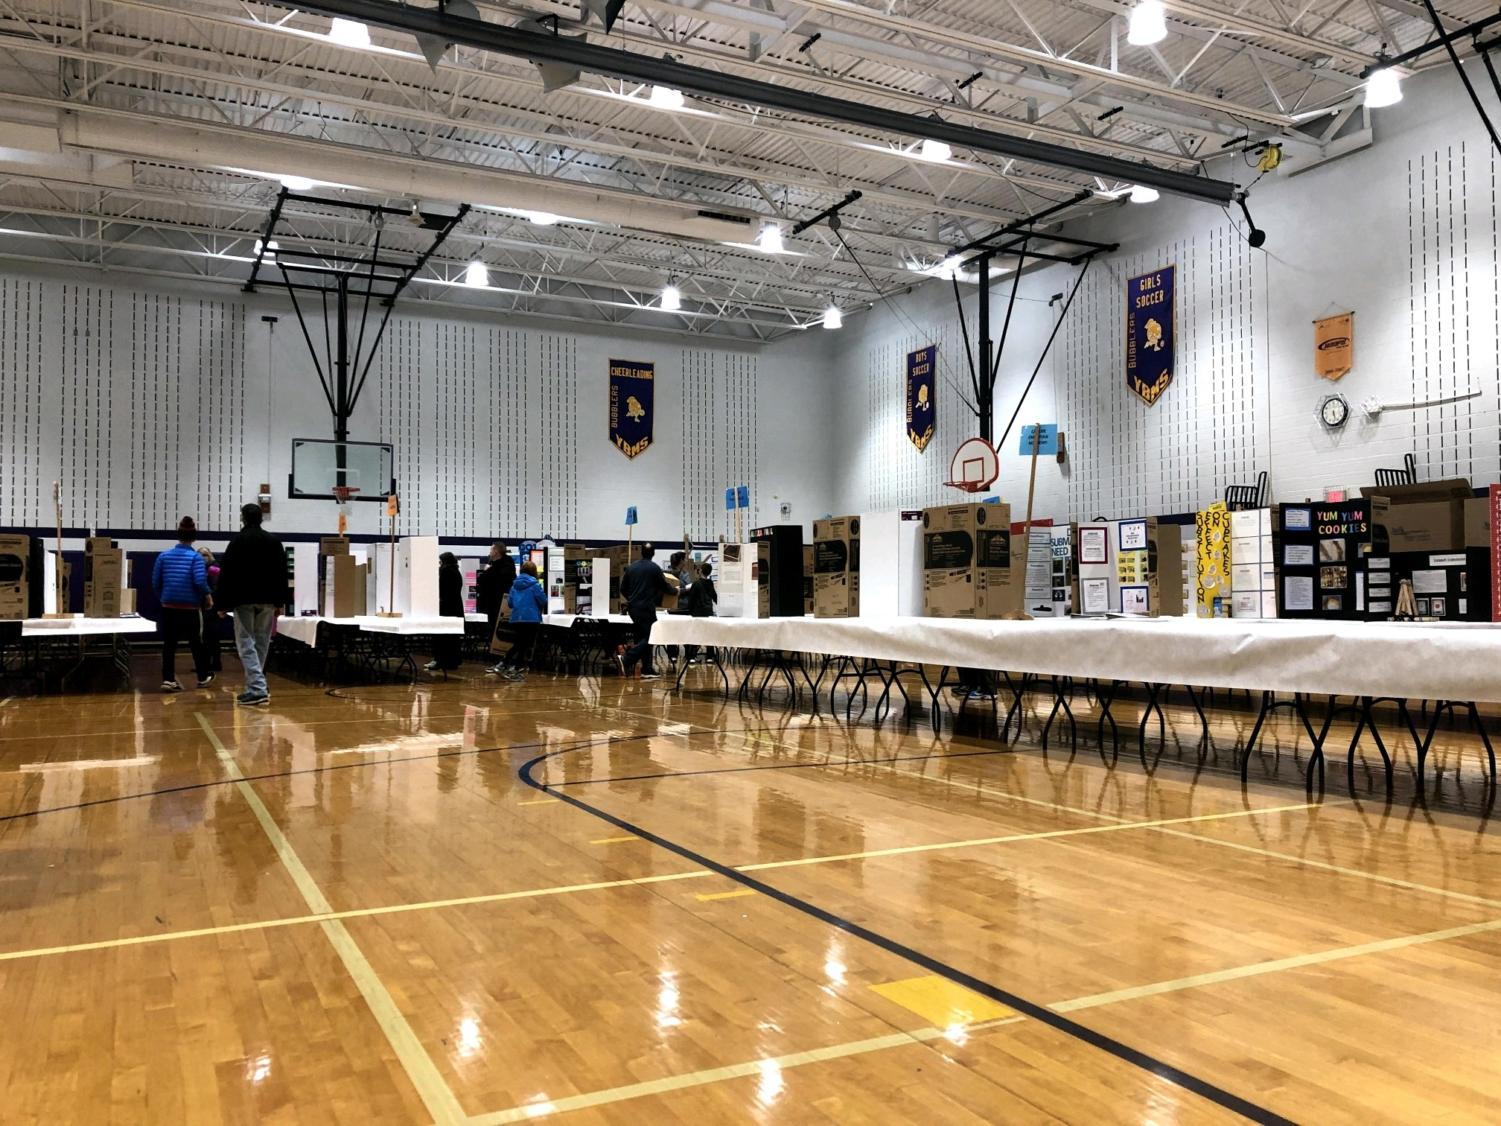 Science Fair projects sit in the gym at Yellow Bridges Middle School prior to judging. The fair took place over two days at Yellow Bridges Middle School.